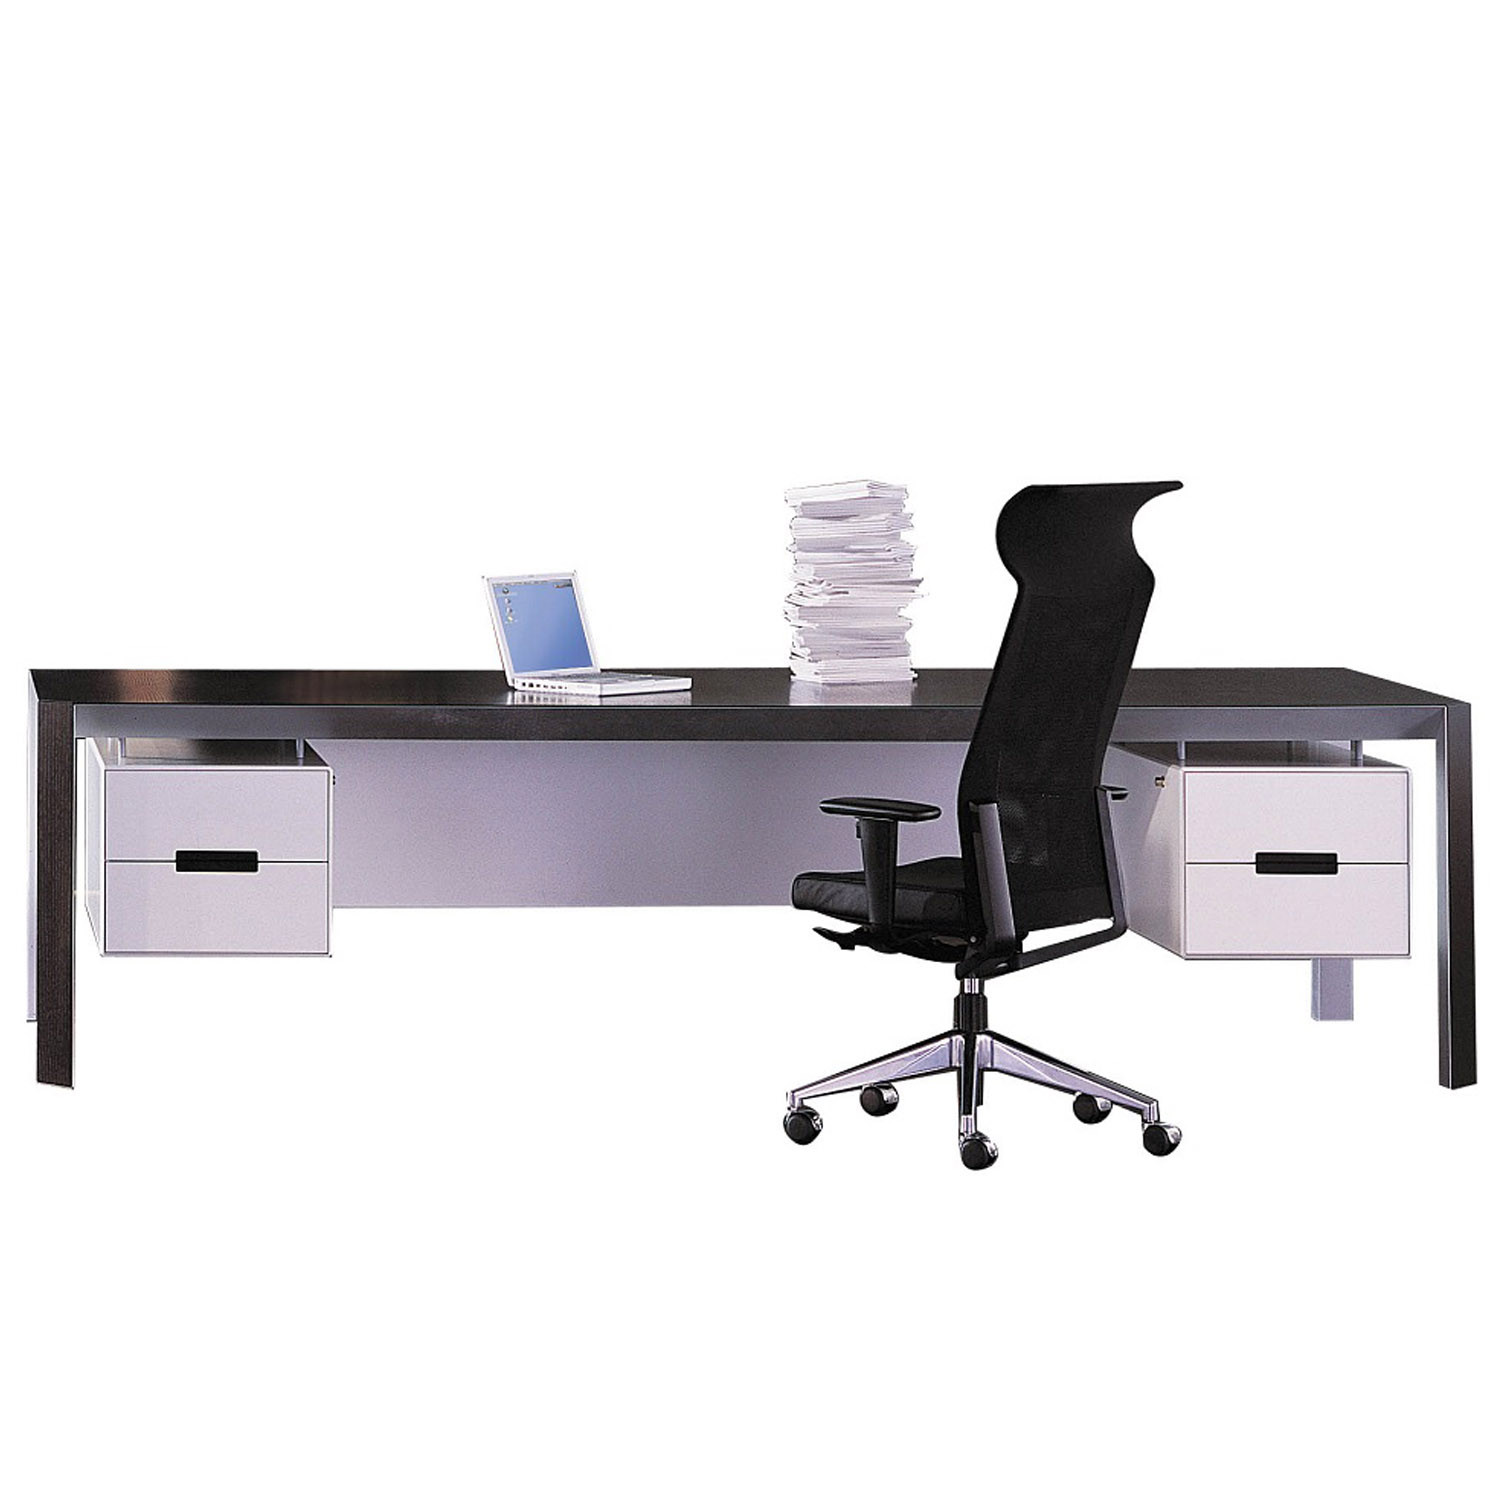 Quo Vadis Executive Desk